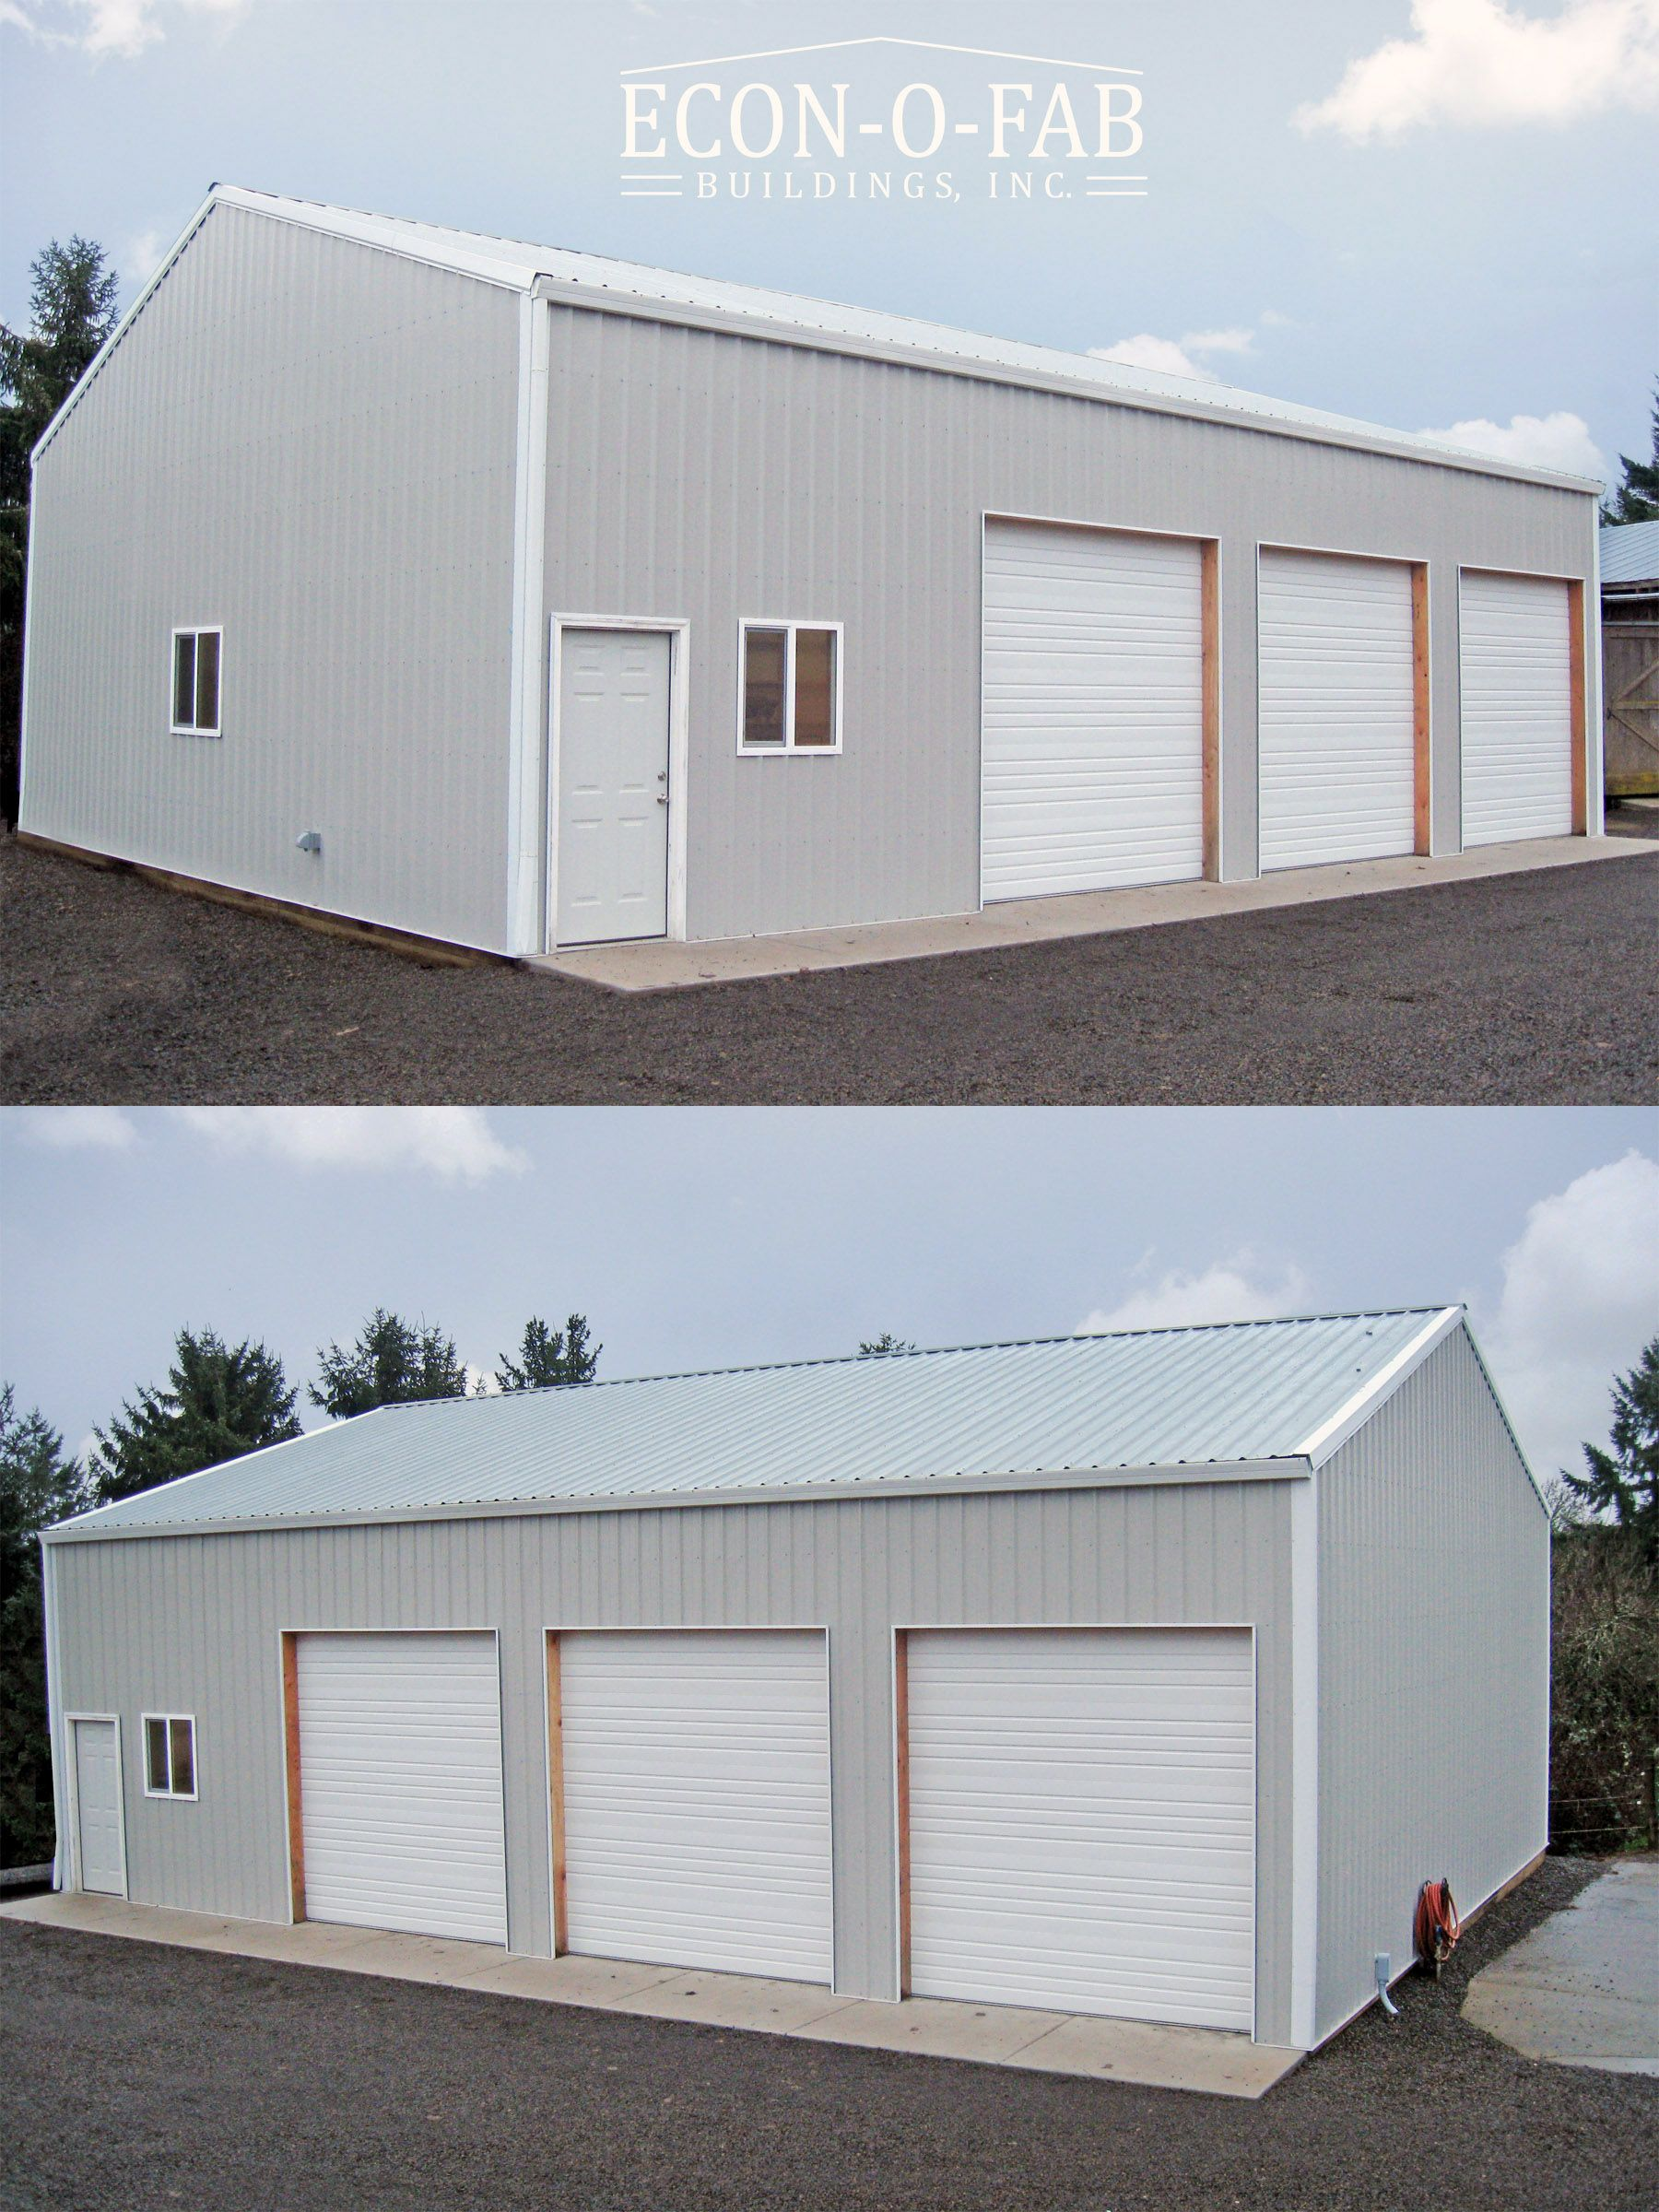 36 X 48 X 14 Pole Building In 2020 Building A Pole Barn Metal Garage Buildings Pole Barn Garage